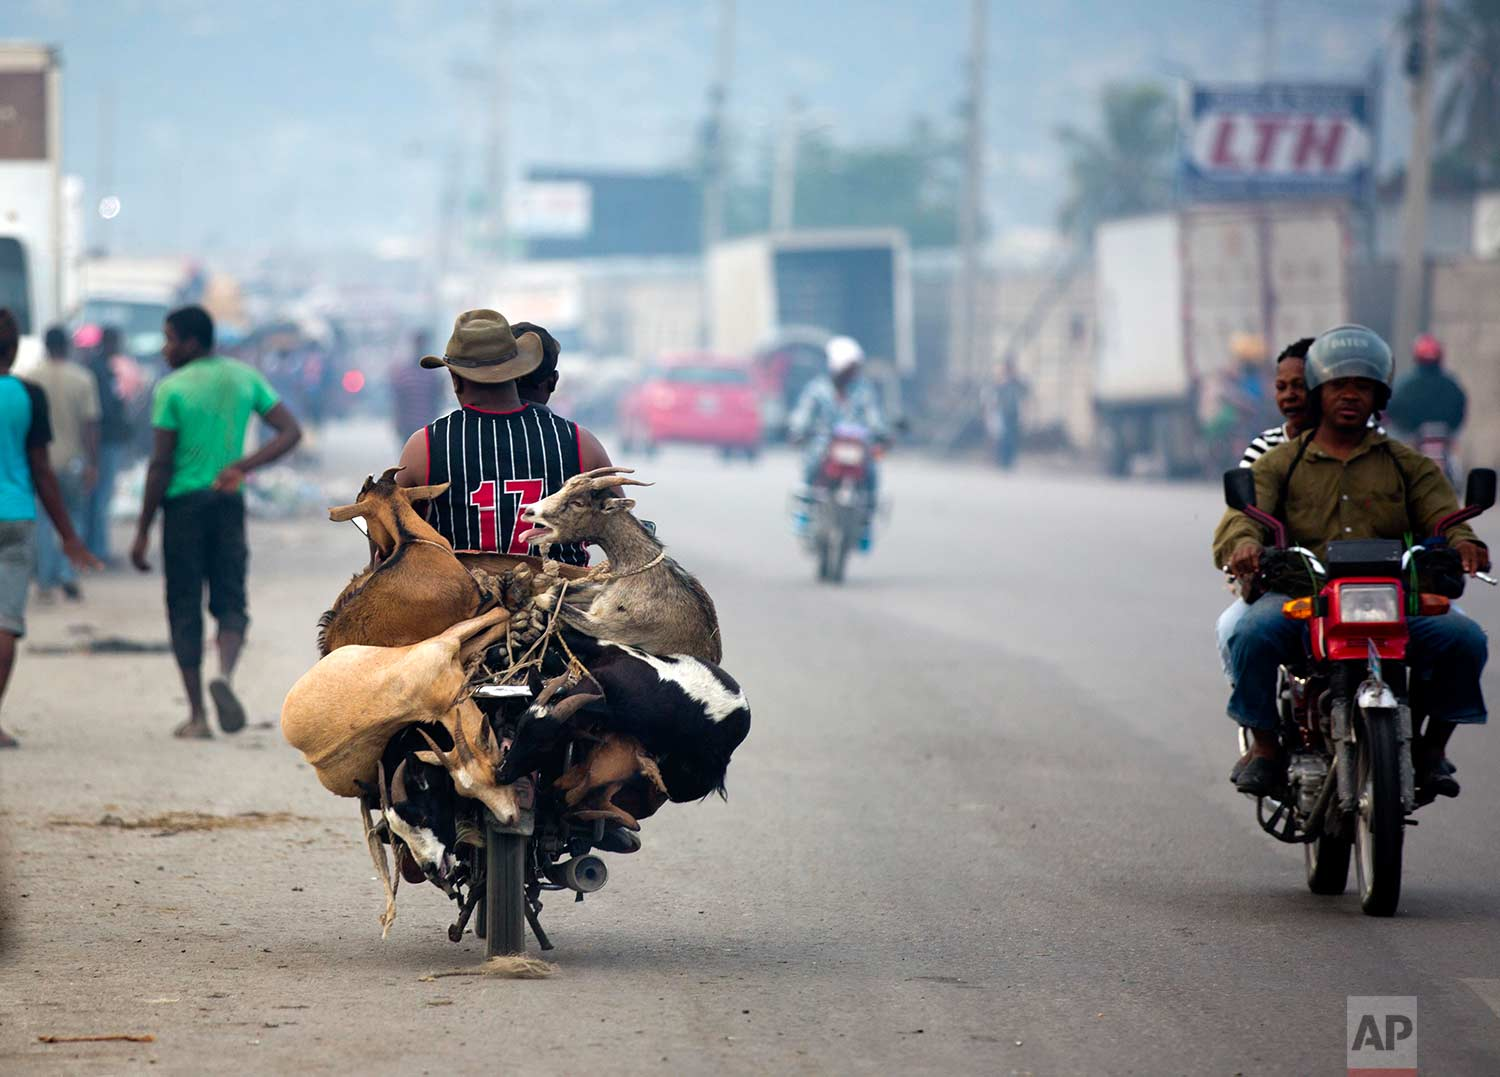 In this Nov. 9, 2017 photo, a moto-taxi driver transports a La Saline slaughterhouse customer and his newly acquired goats, in Port-au-Prince, Haiti. (AP Photo/Dieu Nalio Chery)